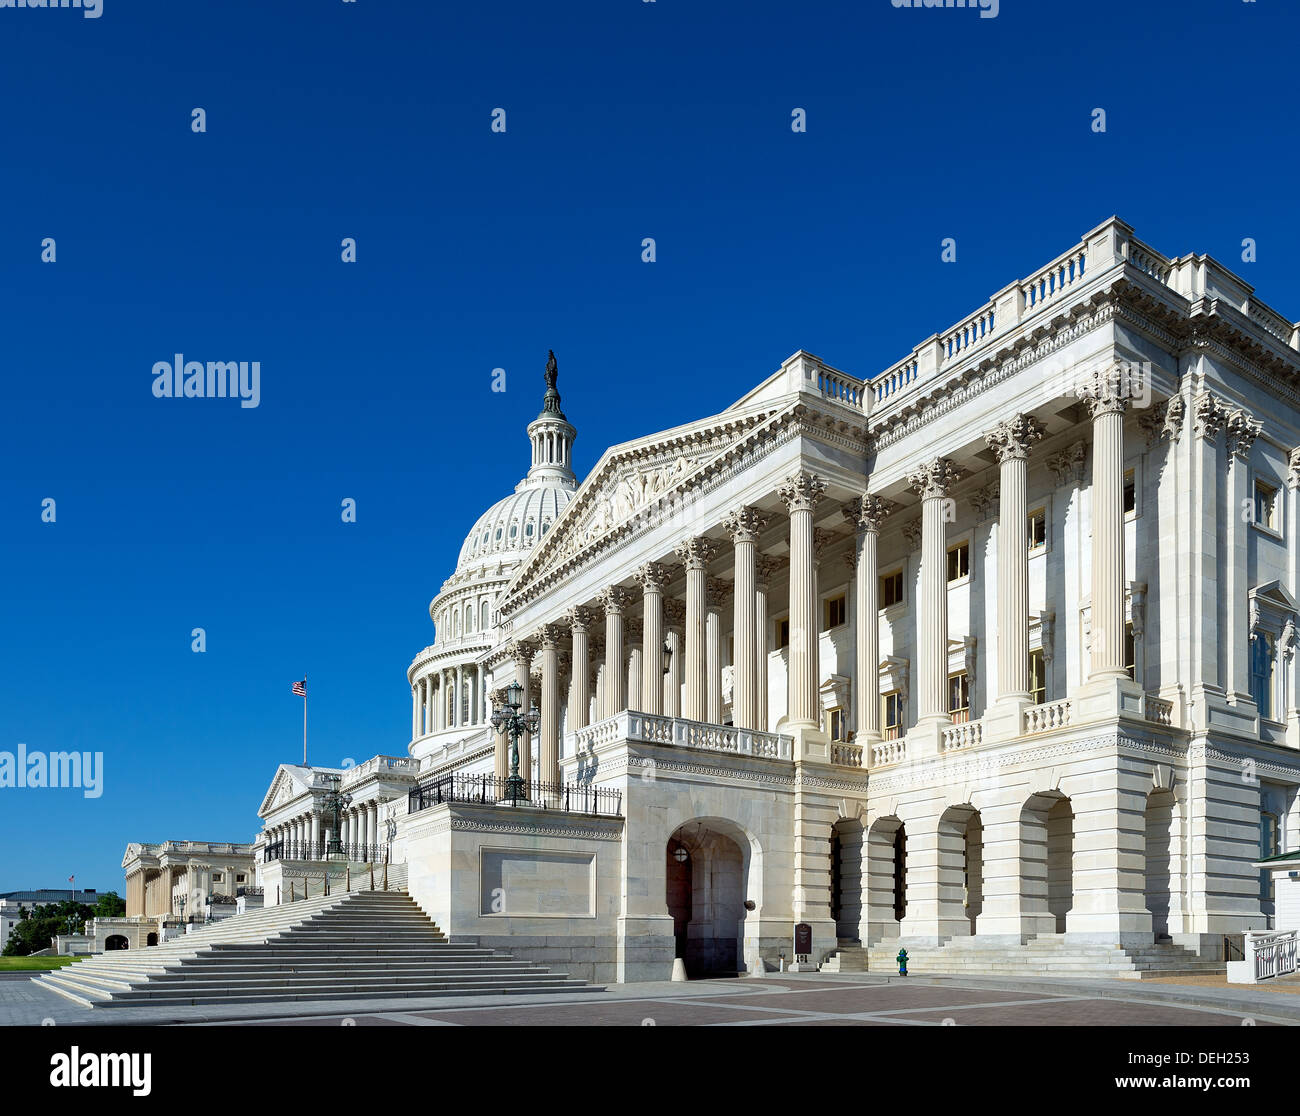 The United States Capitol Building, Washington D.C., USA - Stock Image